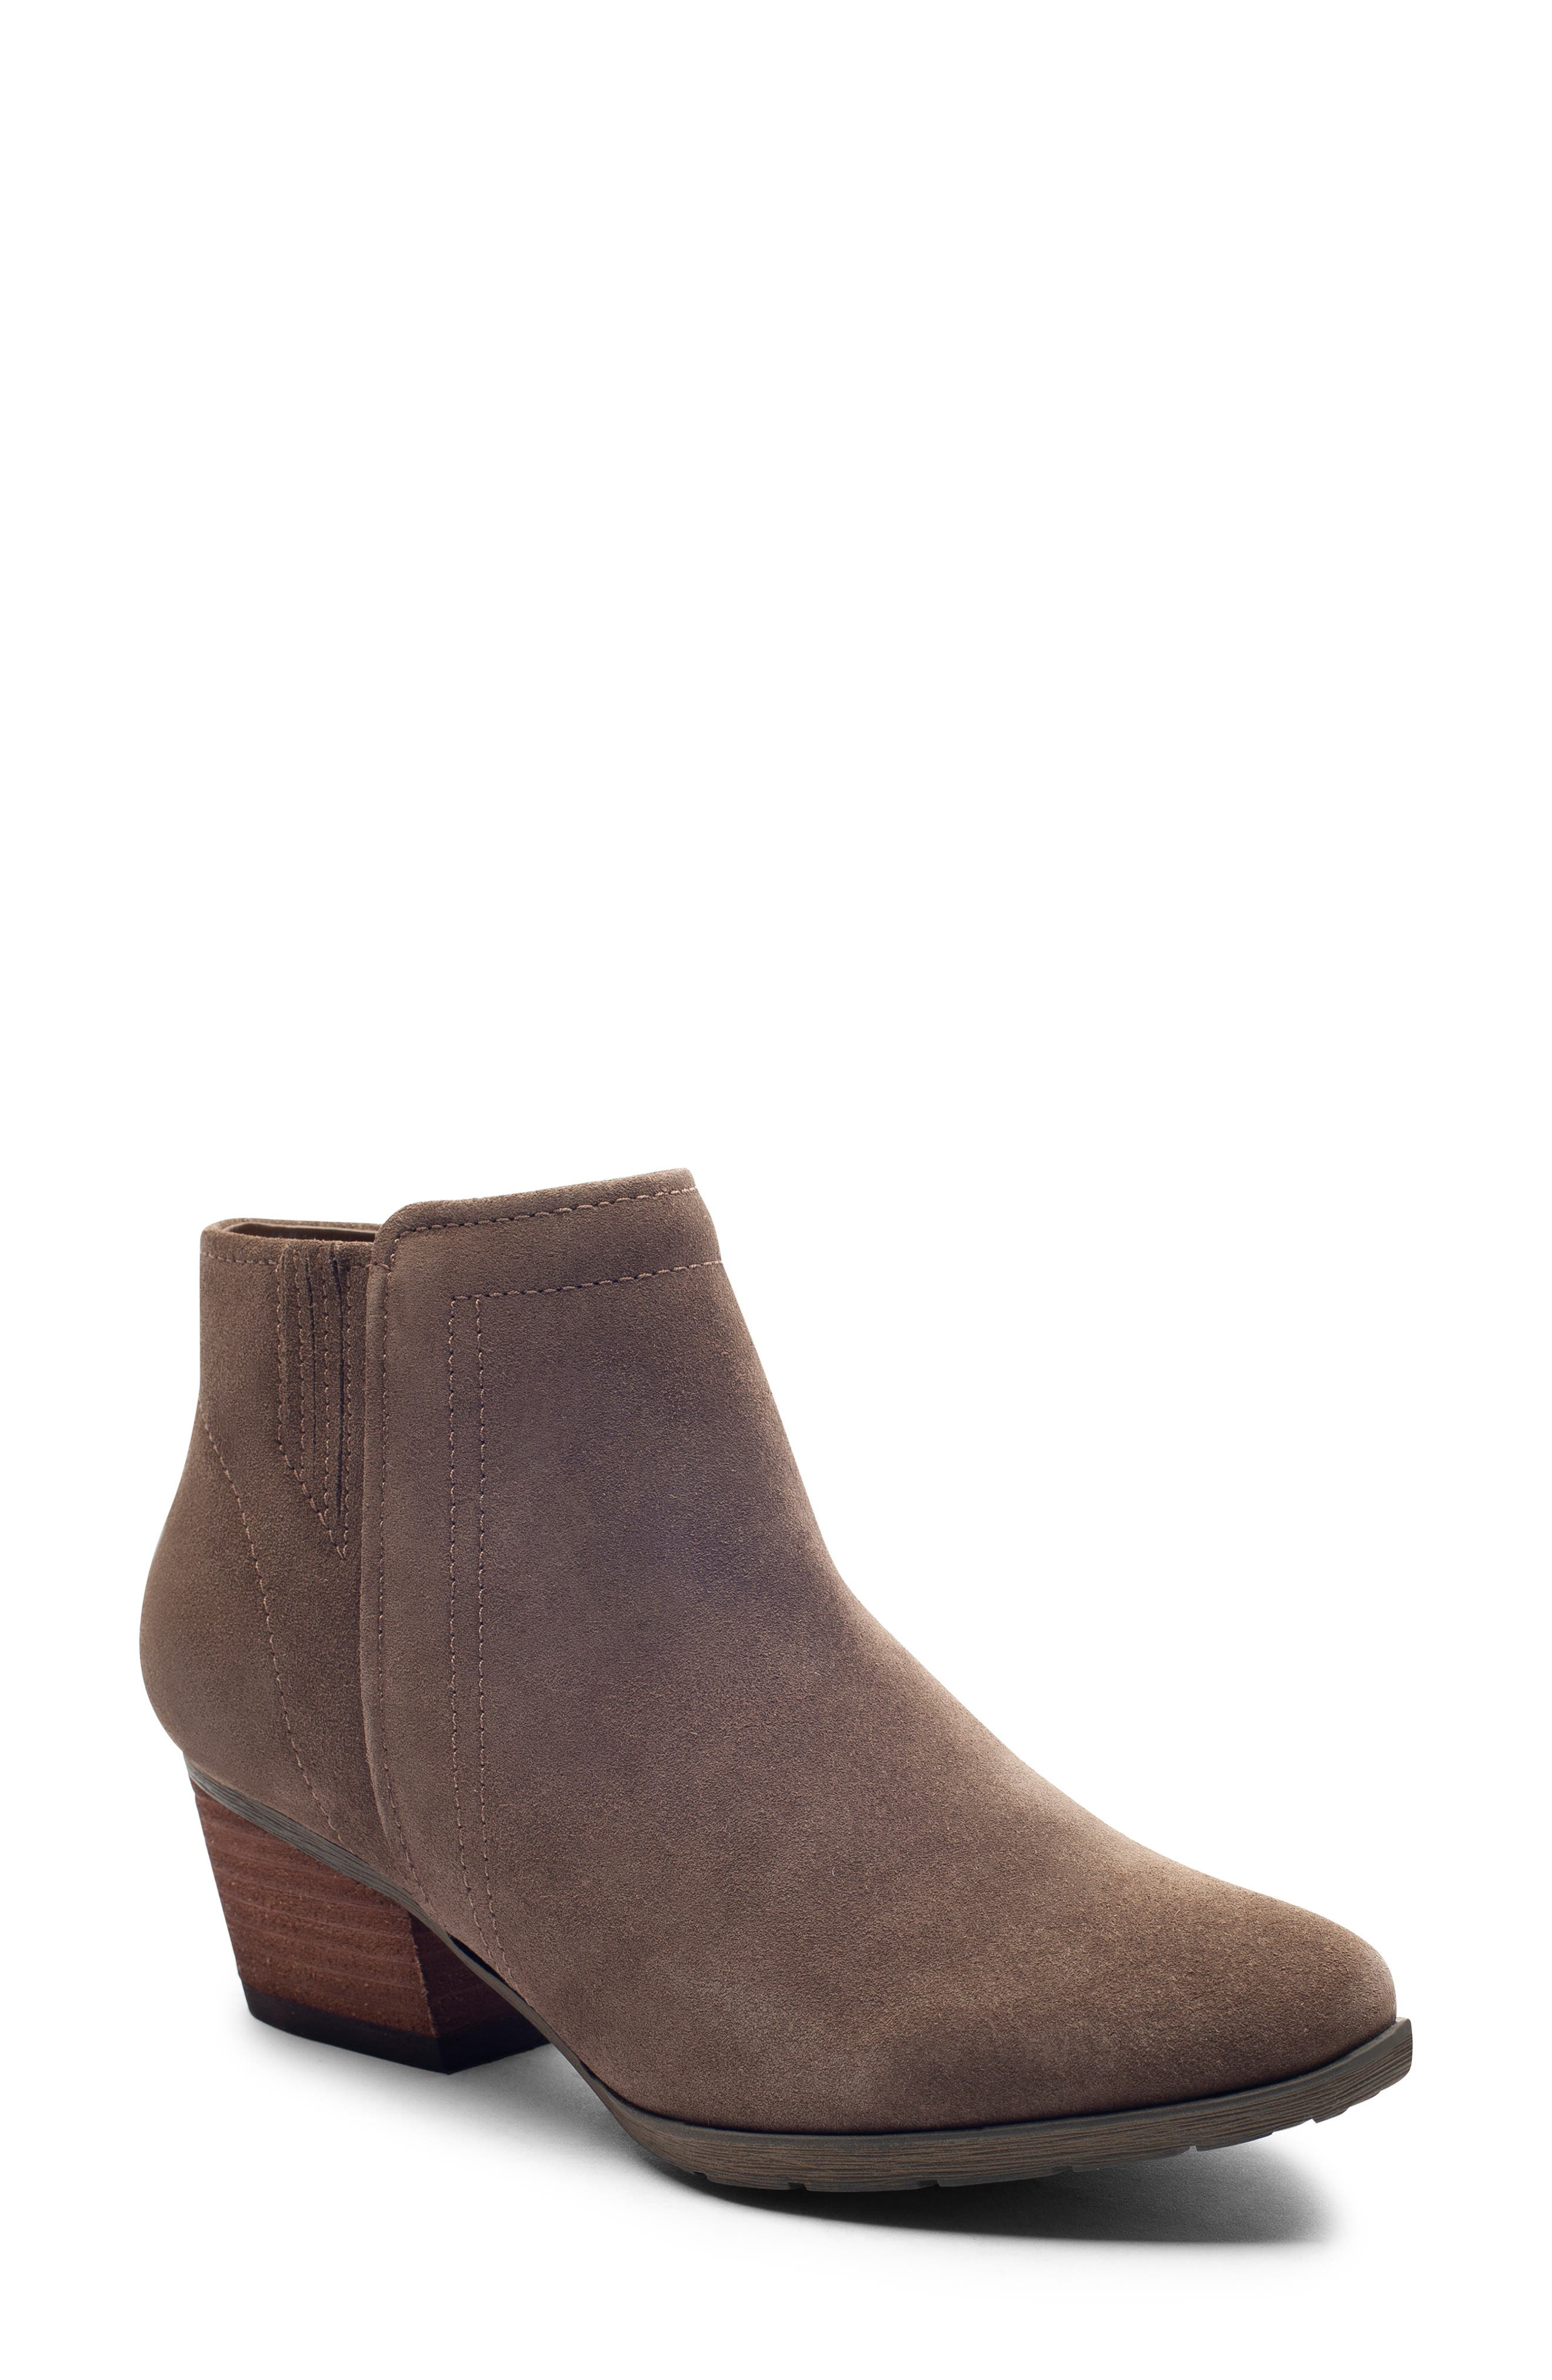 'Valli' Waterproof  Bootie,                             Main thumbnail 1, color,                             DARK TAUPE SUEDE